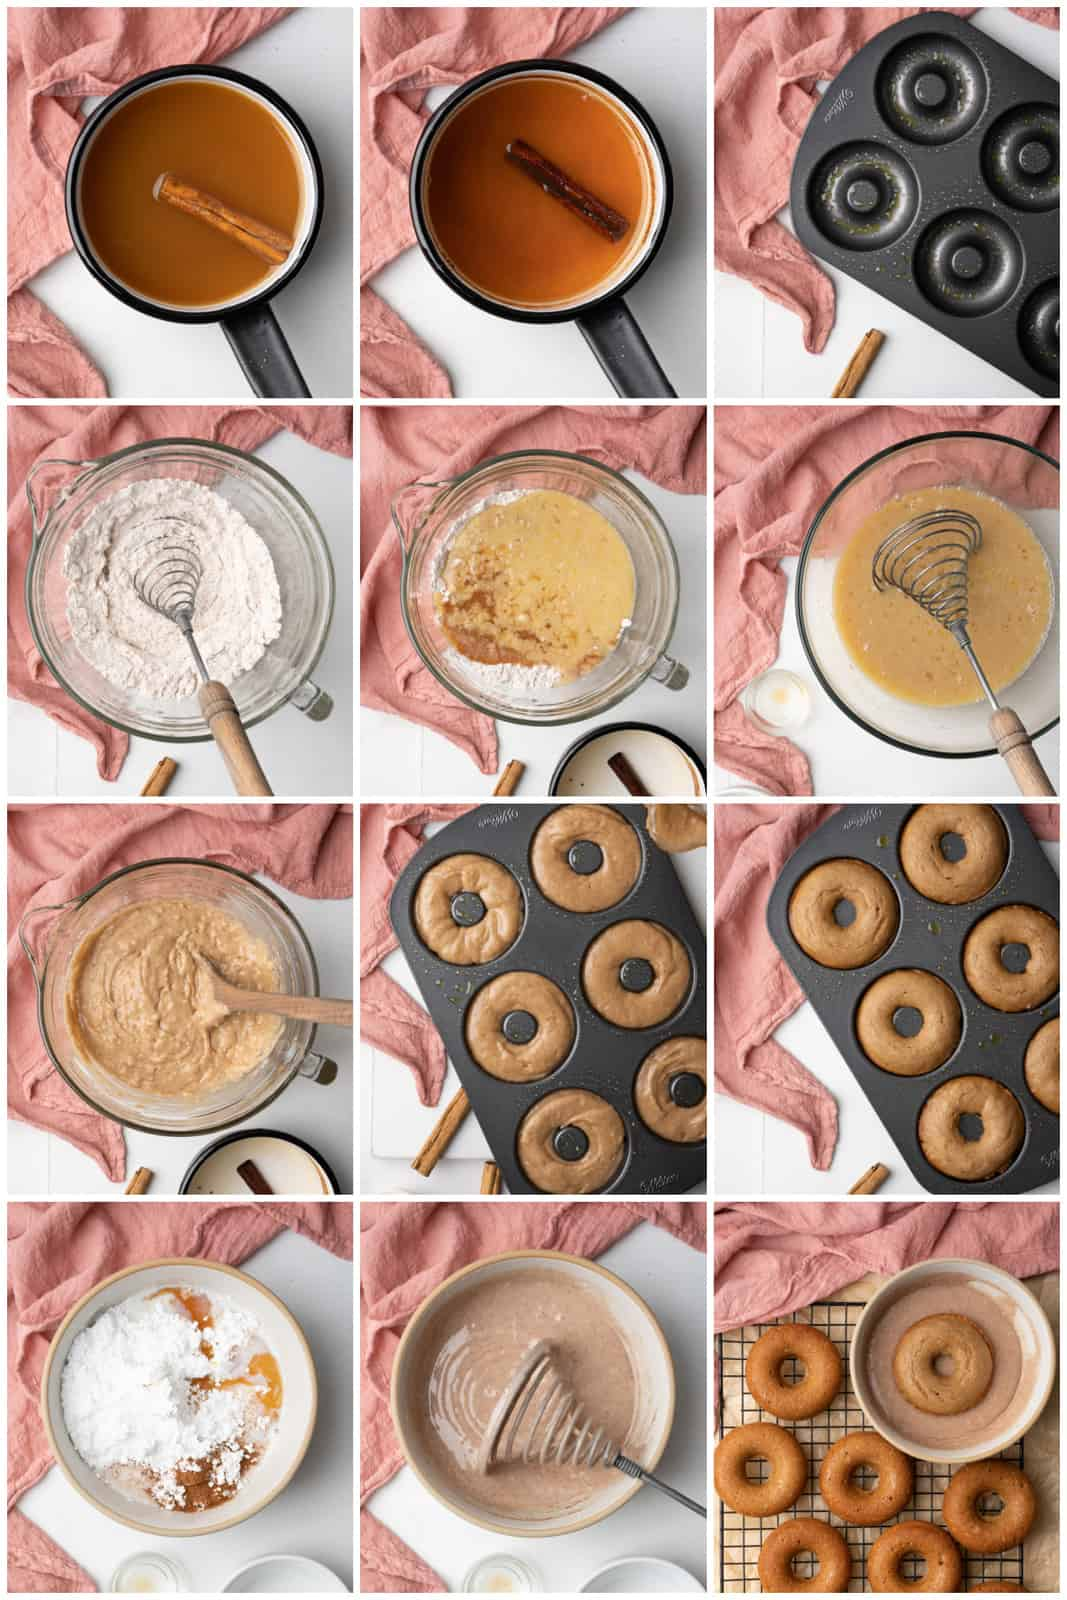 Step by step photos on how to make Apple Cider Donuts